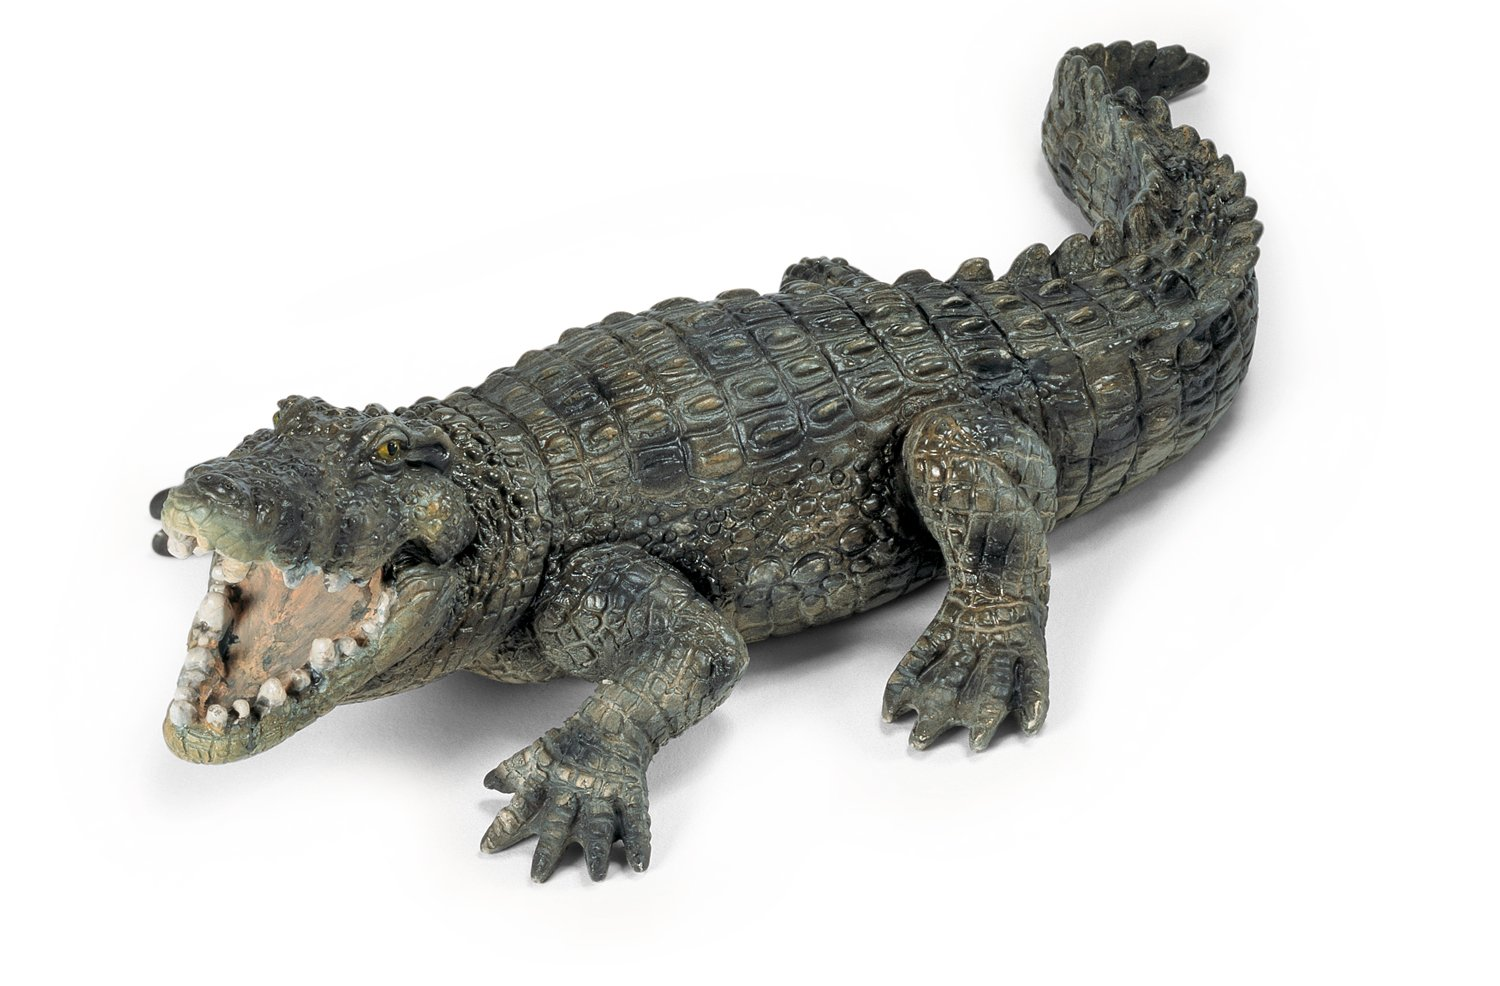 amazon com schleich crocodile schleich toys games